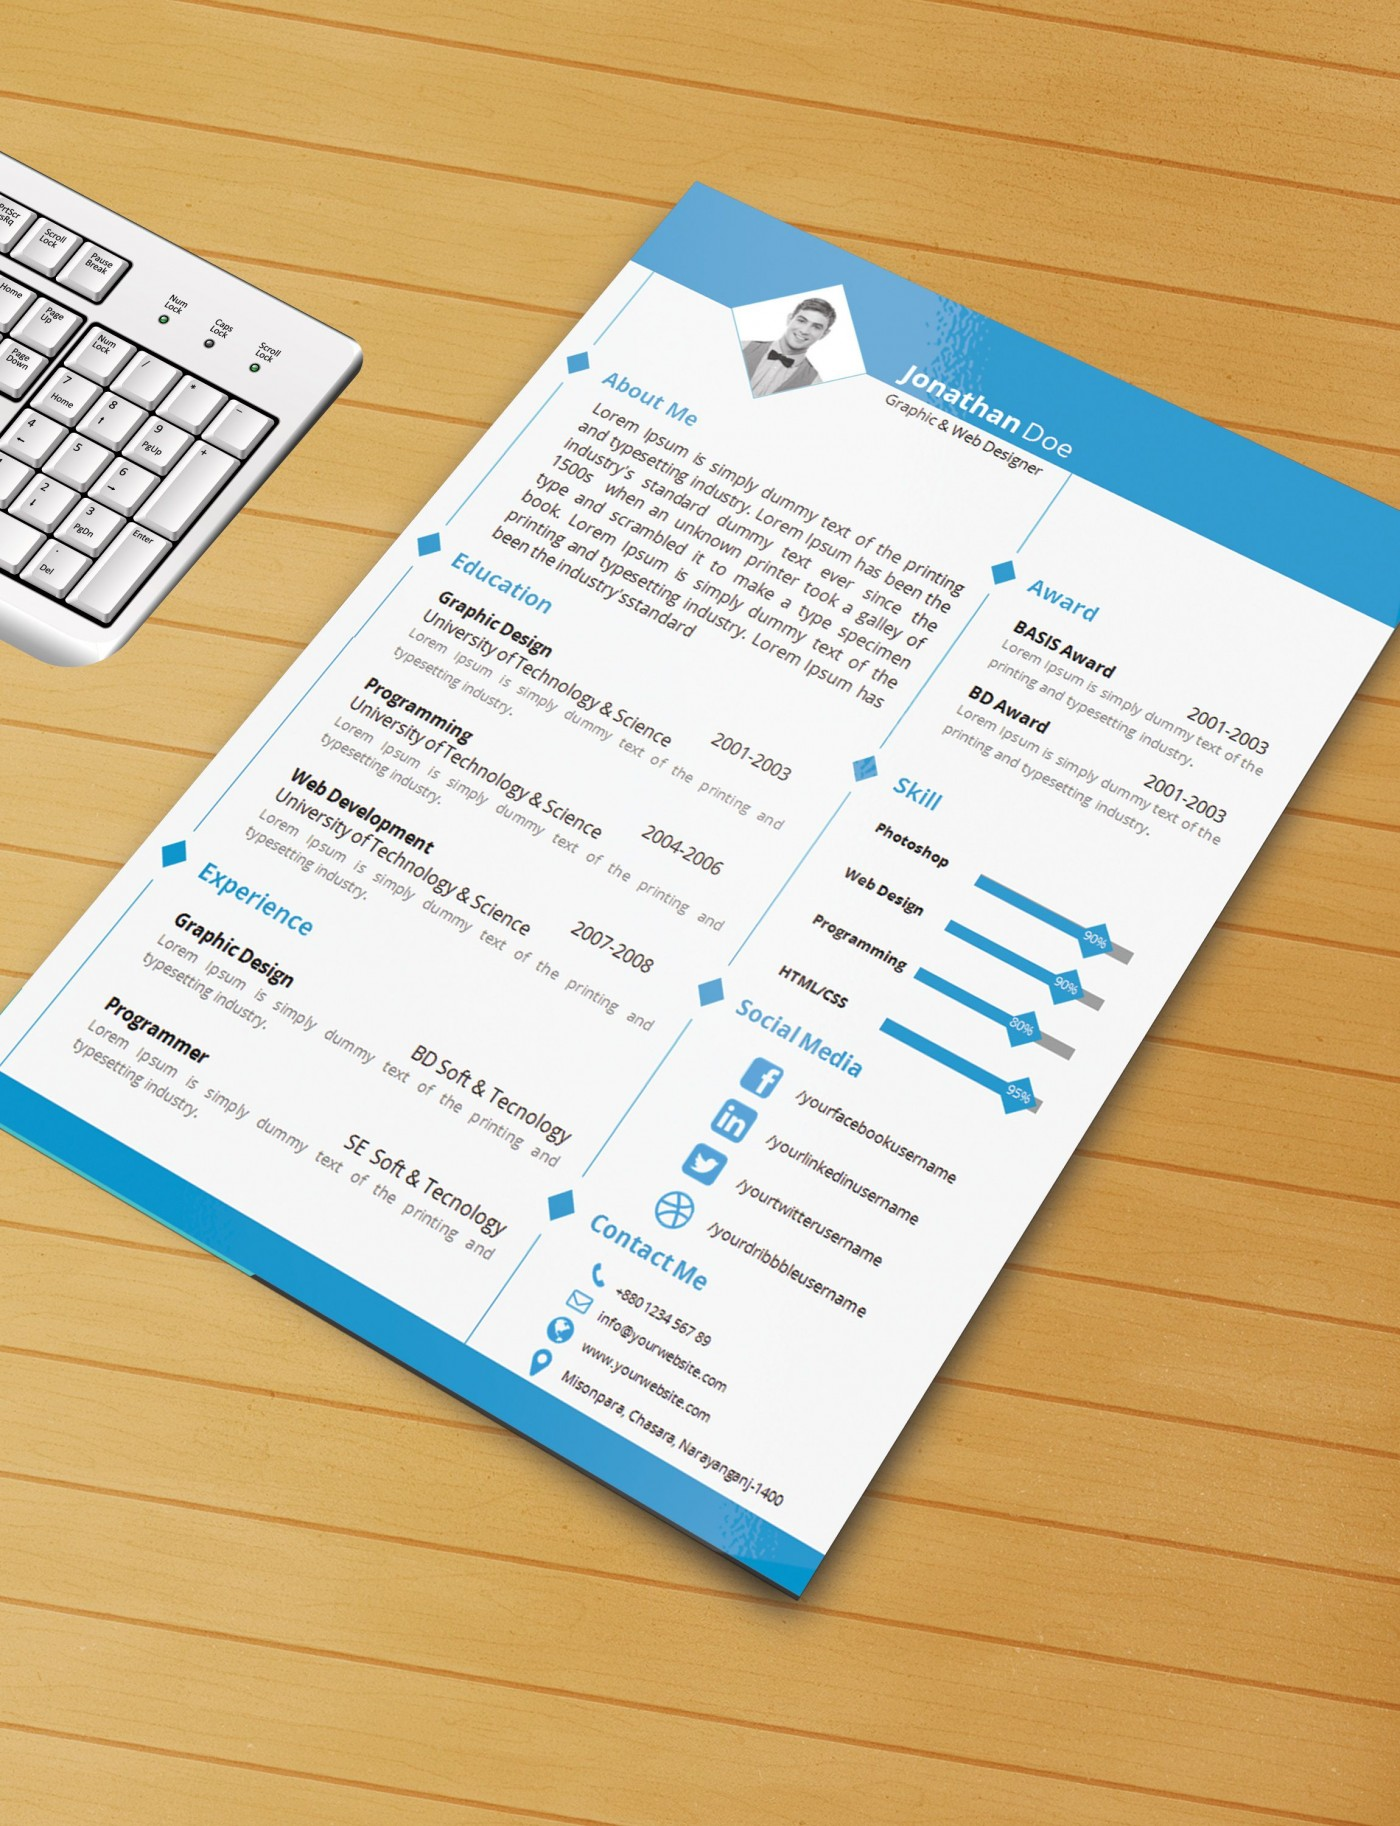 004 Outstanding Microsoft Word Template Download High Definition  2010 Resume Free 2007 Error Invoice1400